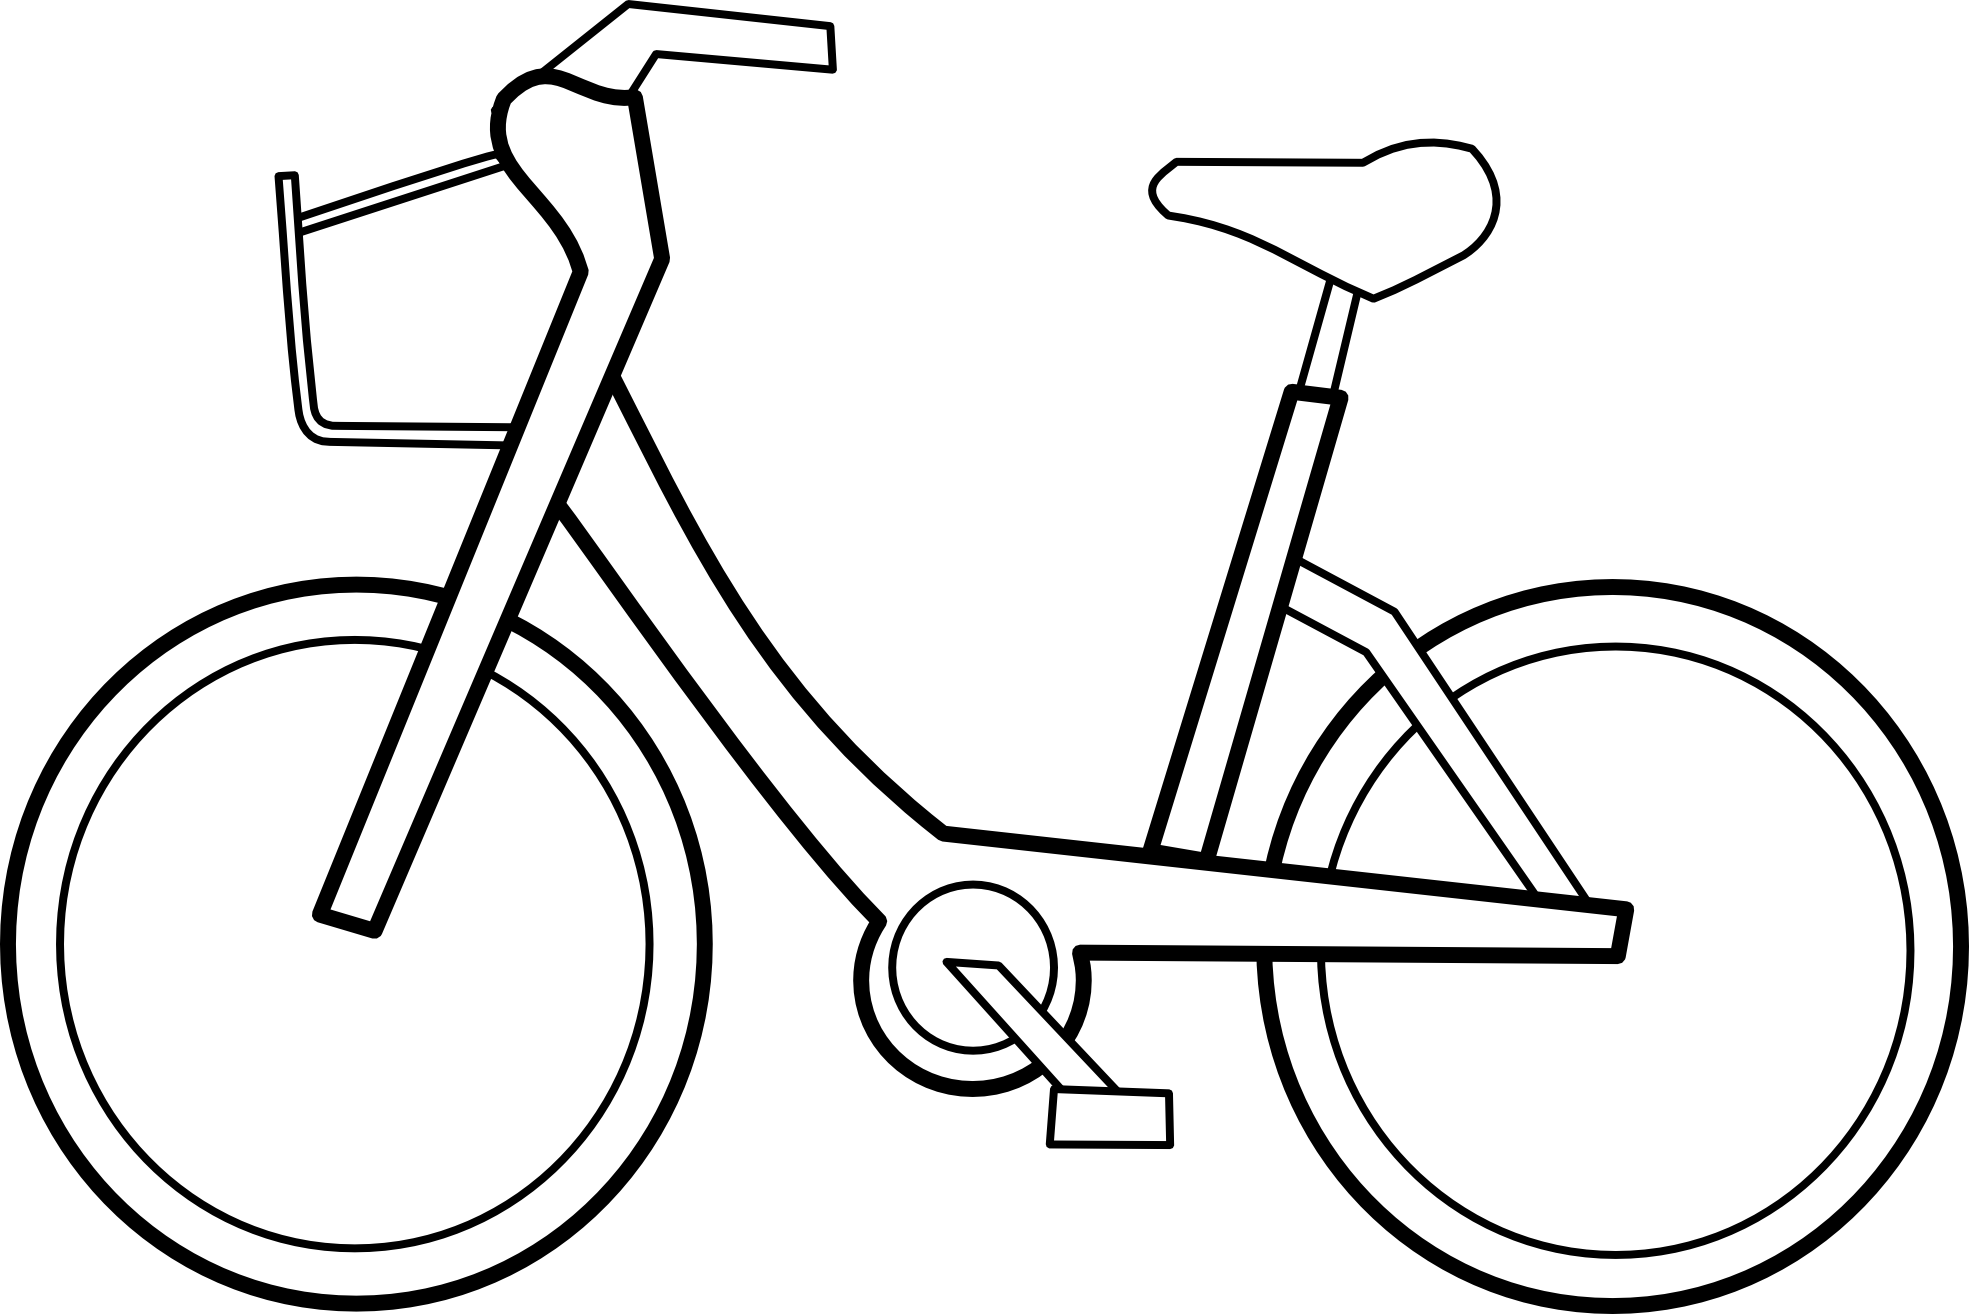 Bw bike clipart clip free stock Bike Clipart Black And White | Clipart Panda - Free Clipart Images clip free stock